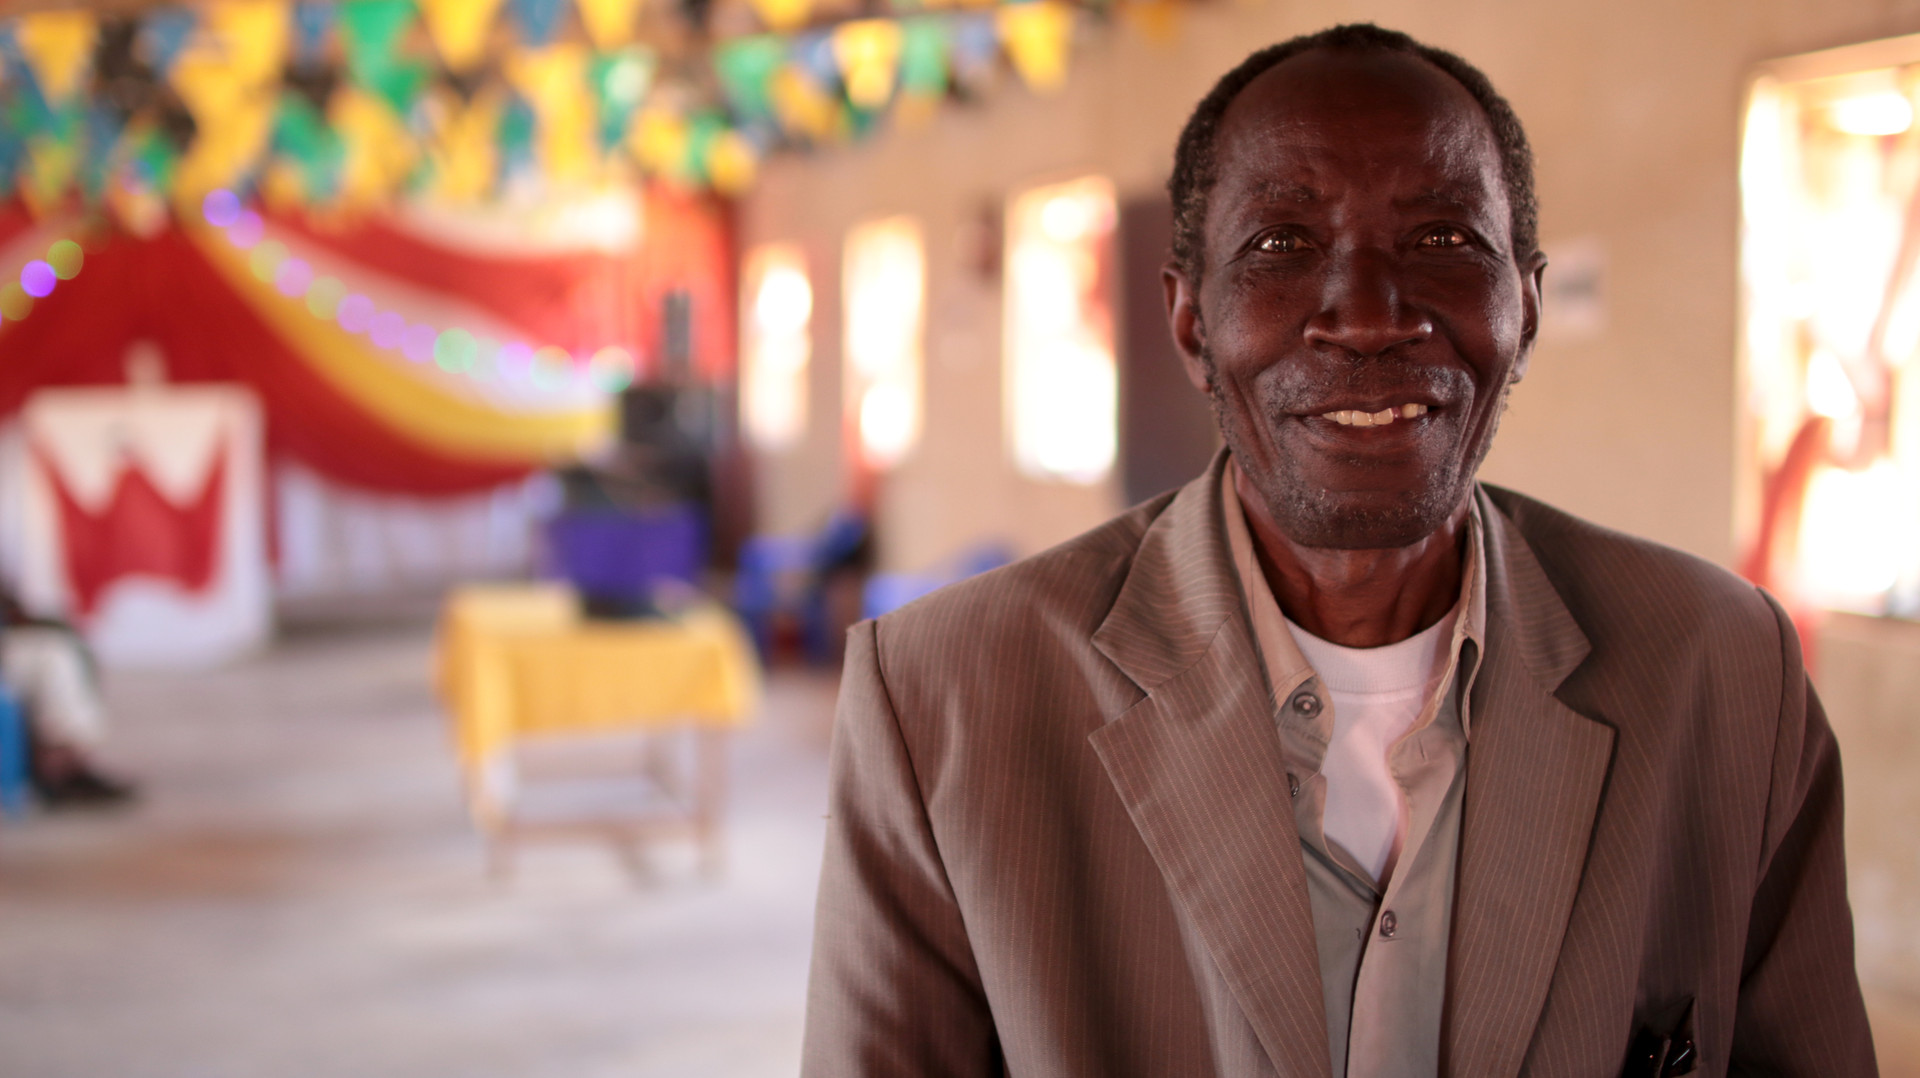 This man came to faith through his wife's witness as she became involved with SI